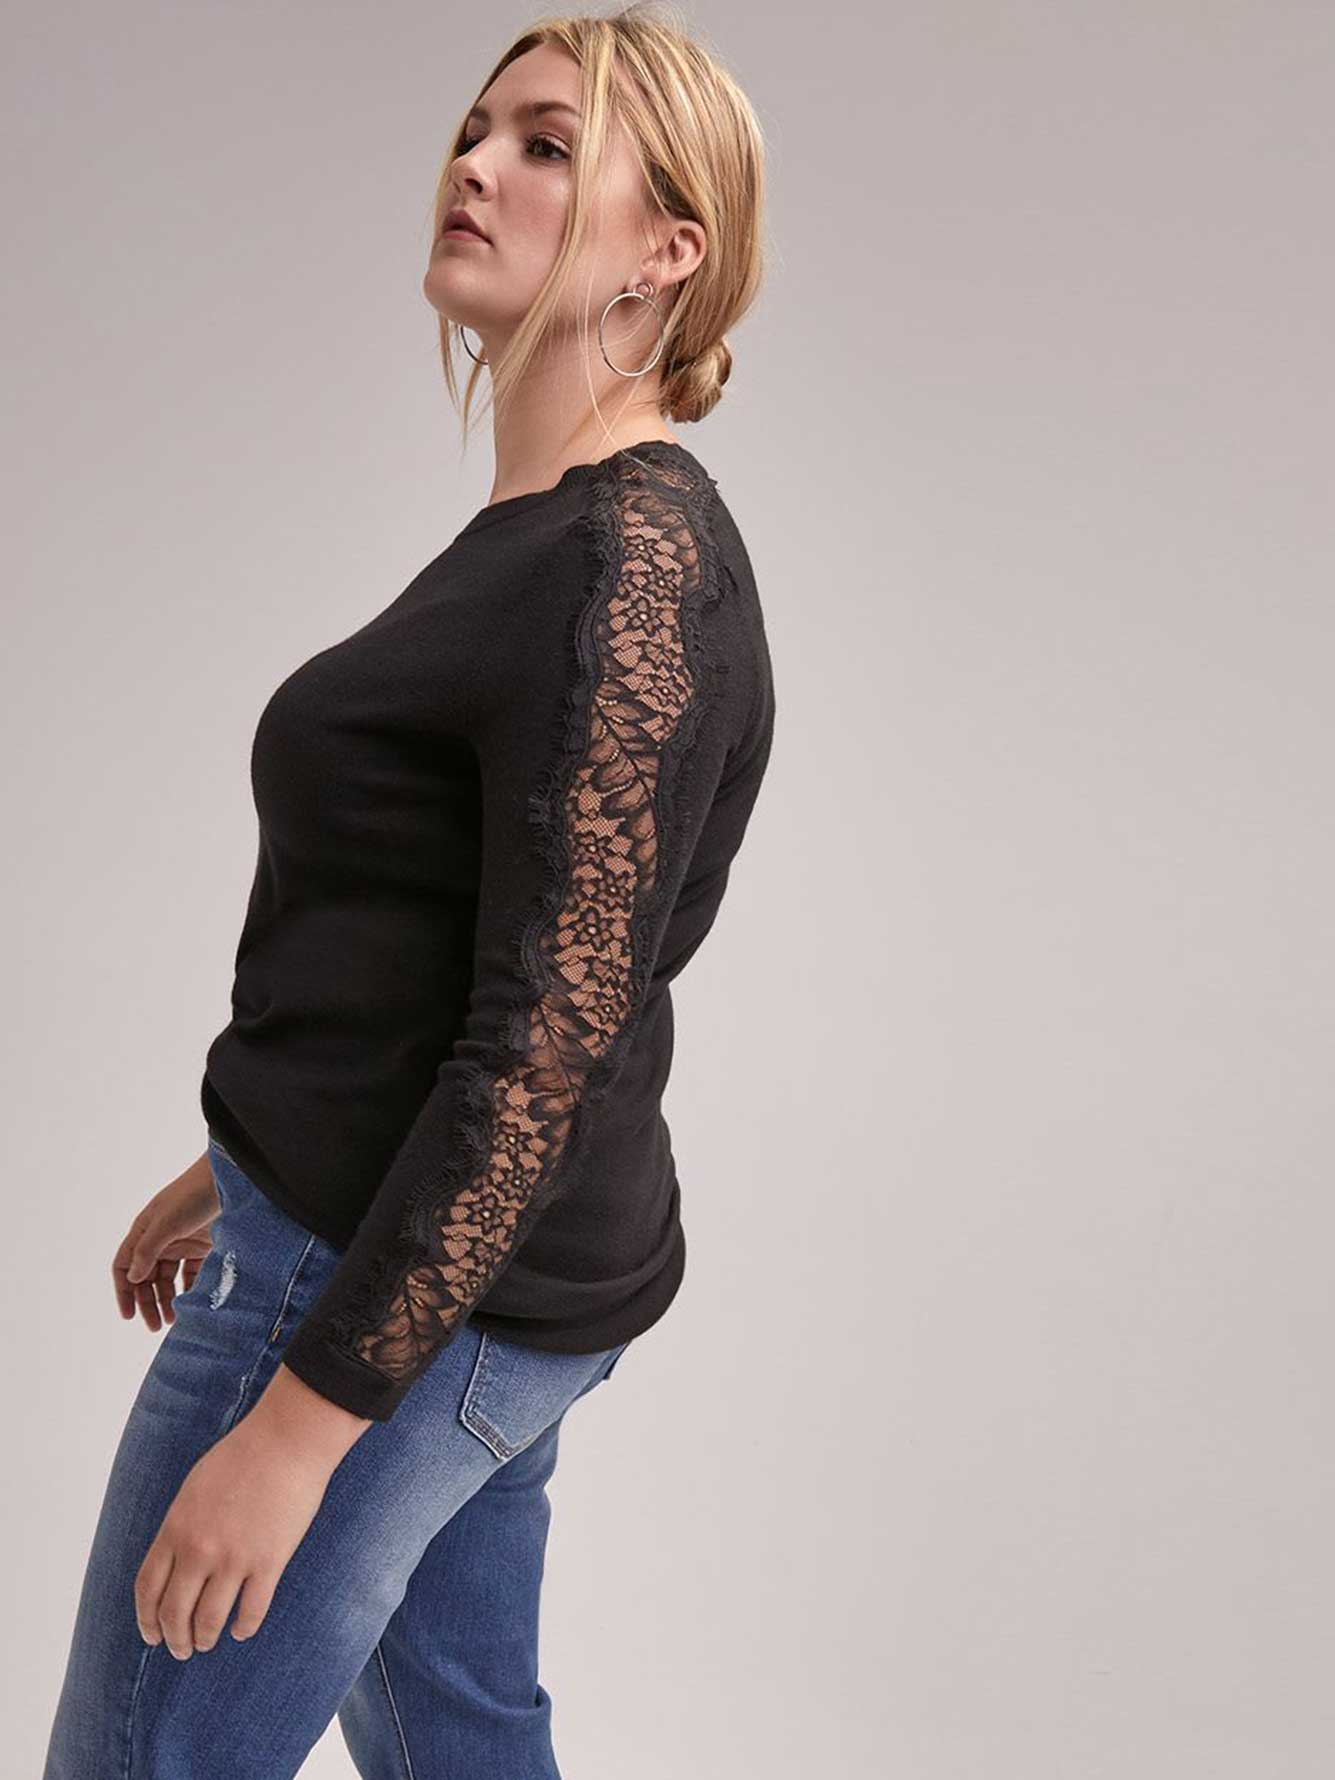 57be9b2fab2 Long Sleeve Crew-Neck Sweater with Lace Details - Michel Studio ...